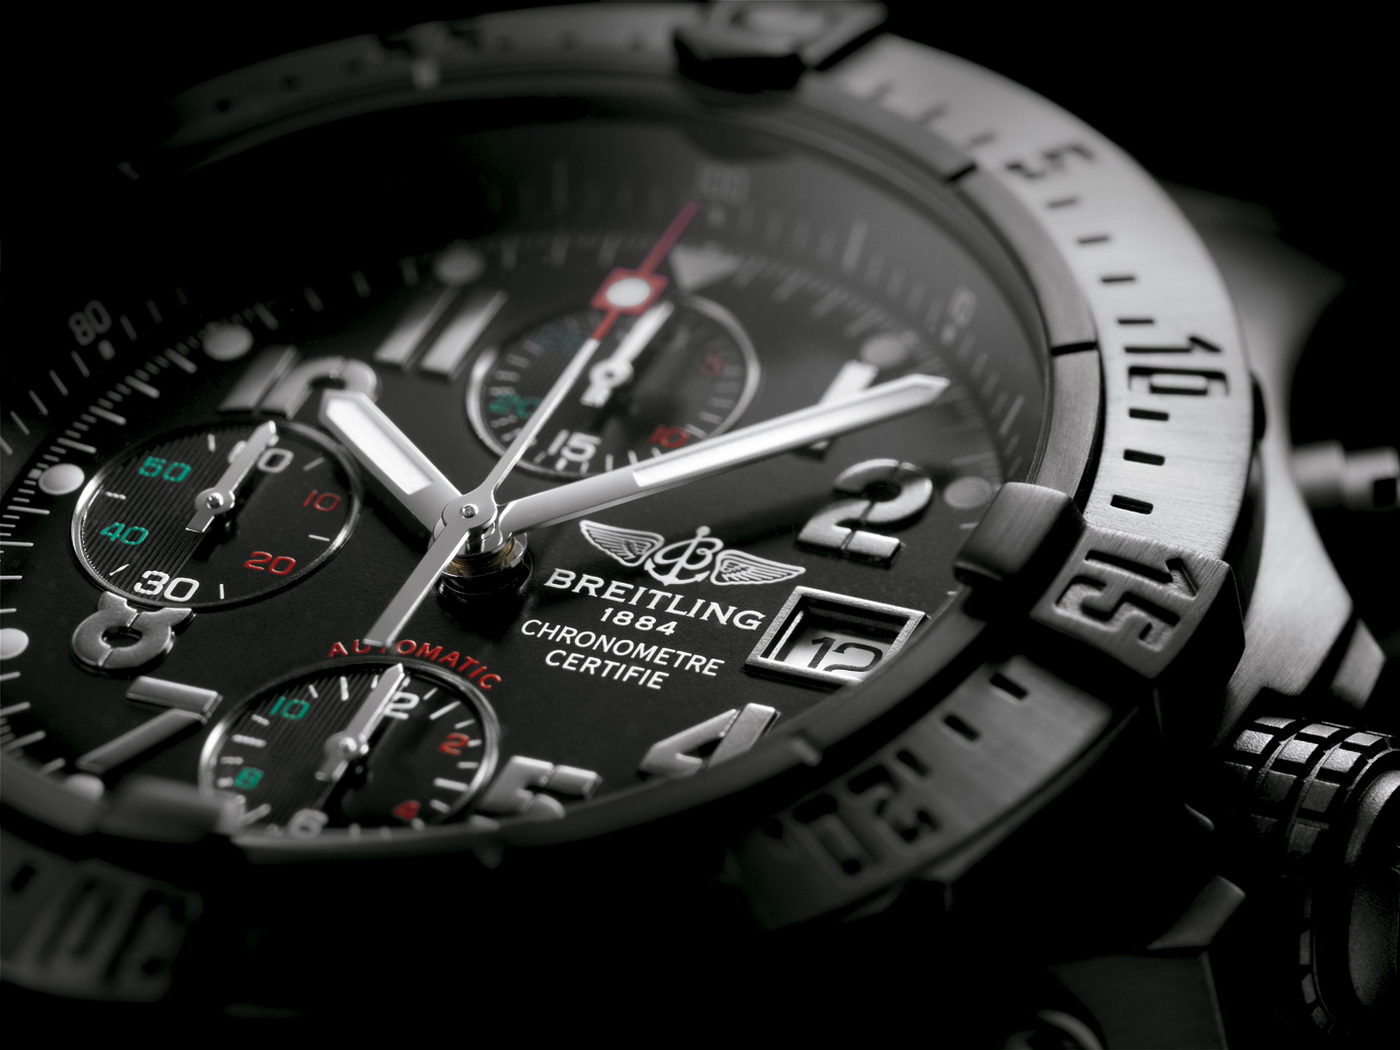 BREITLING_Avenger_Seawolf_Blacksteel_CHRONO_guila_Real_MEXICANA_02